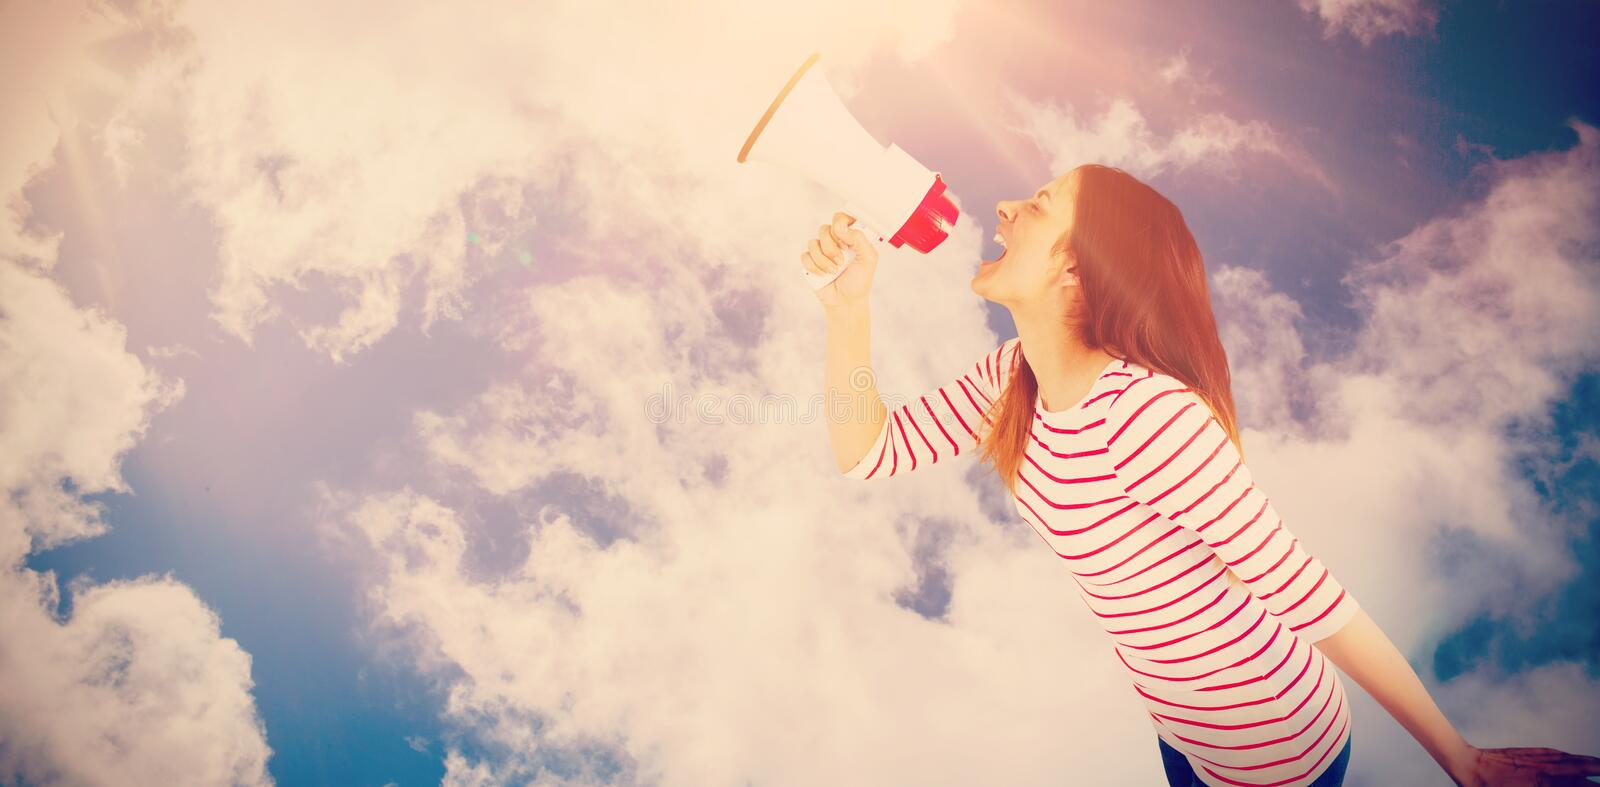 Composite image of carefree young woman making announcement with megaphone royalty free stock images